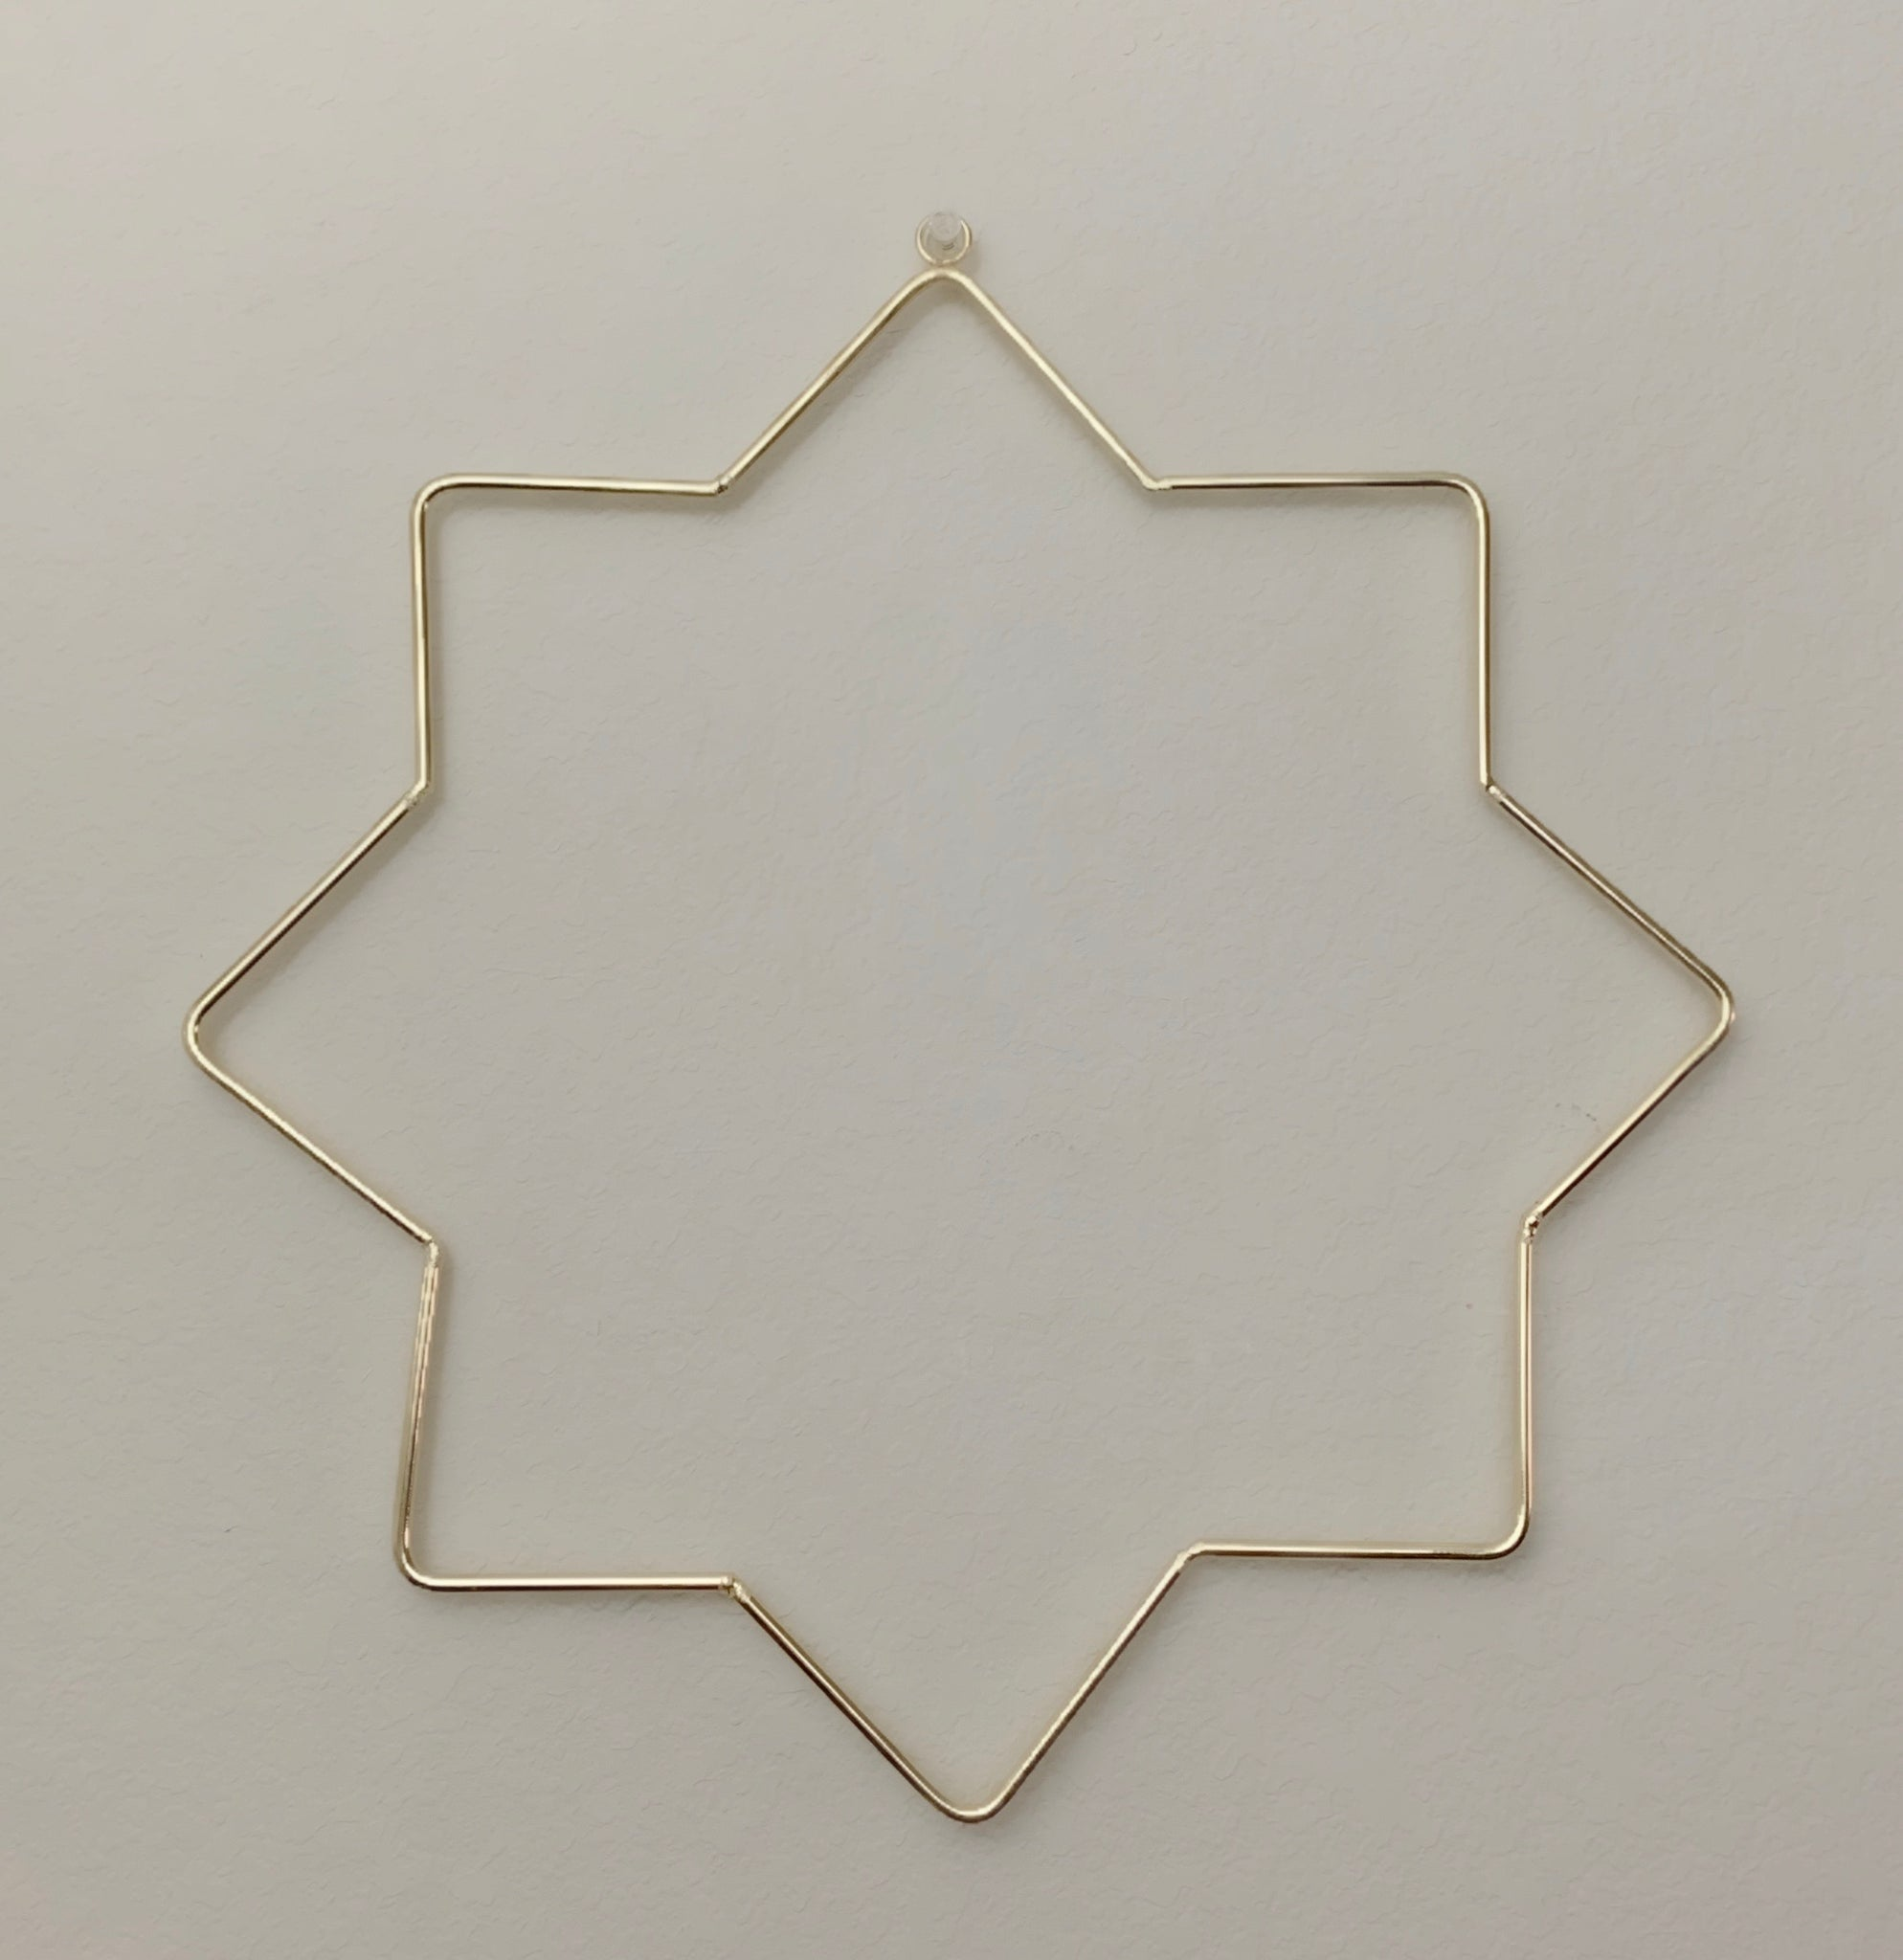 Moroccan 8 Pointed Star Wall Decor